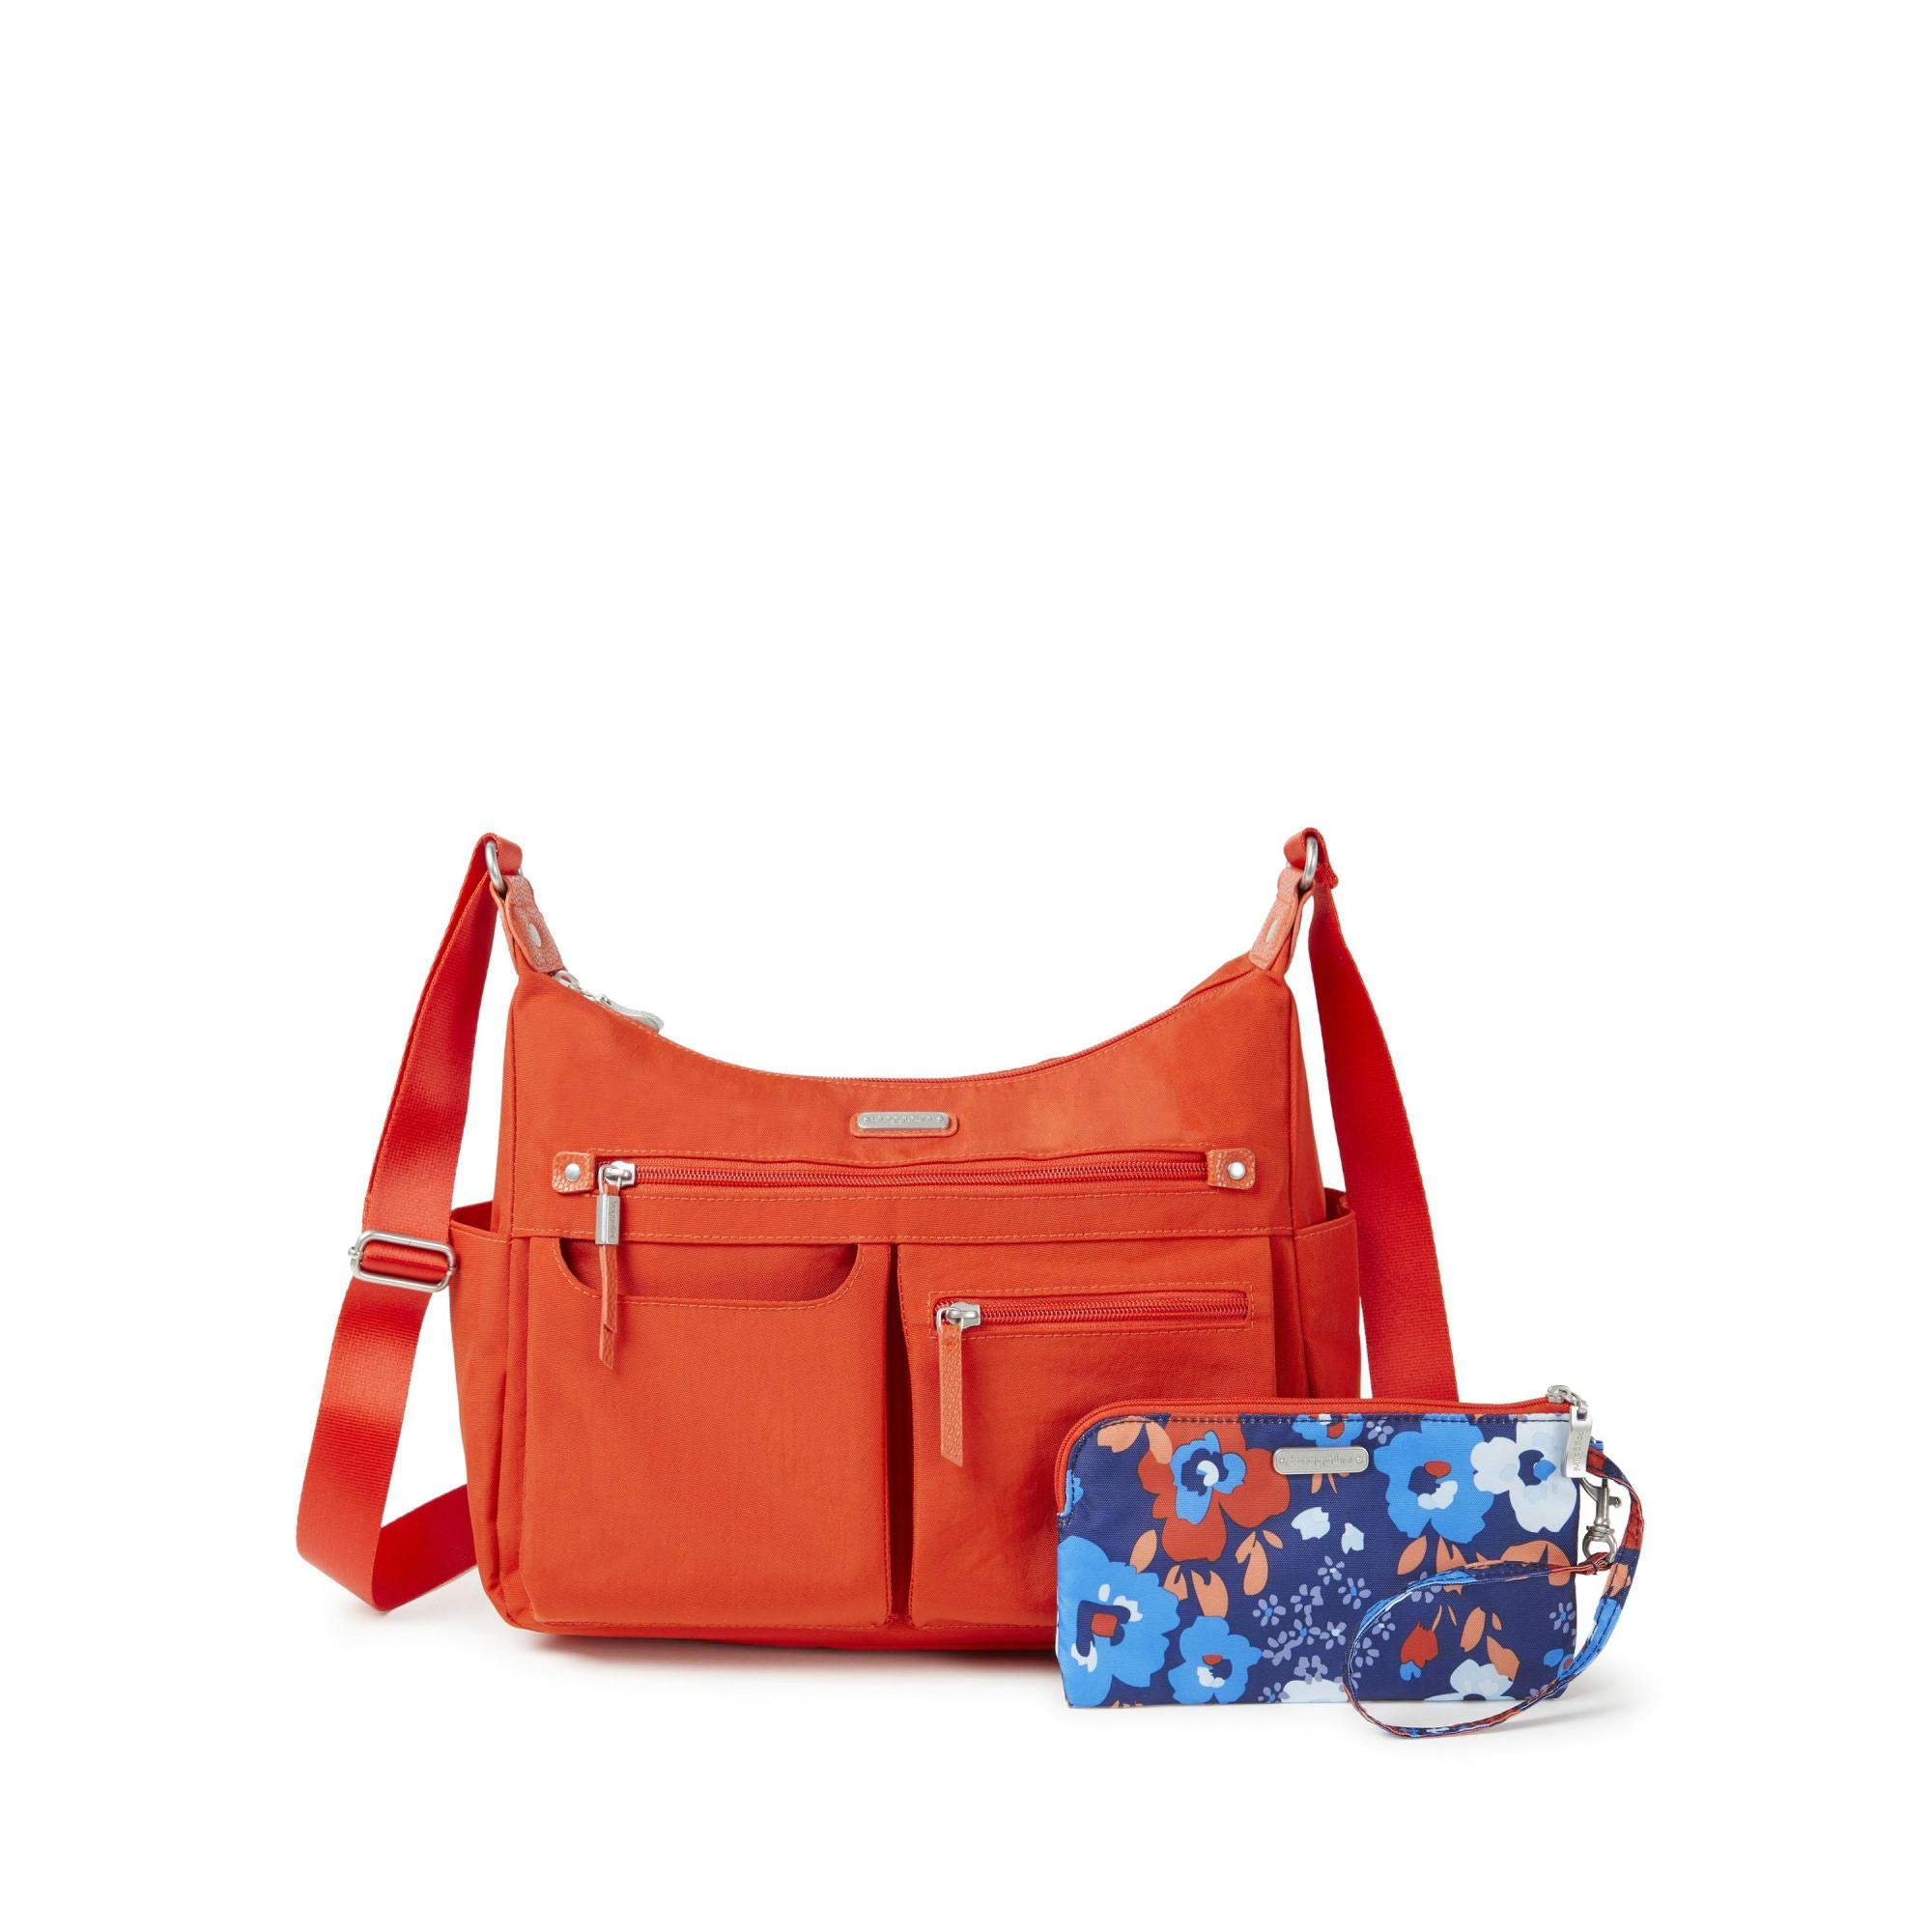 Baggallini Women's New Classic''Heritage'' Anywhere Large Hobo with RFID Phone Wristlet Vibrant Poppy One Size